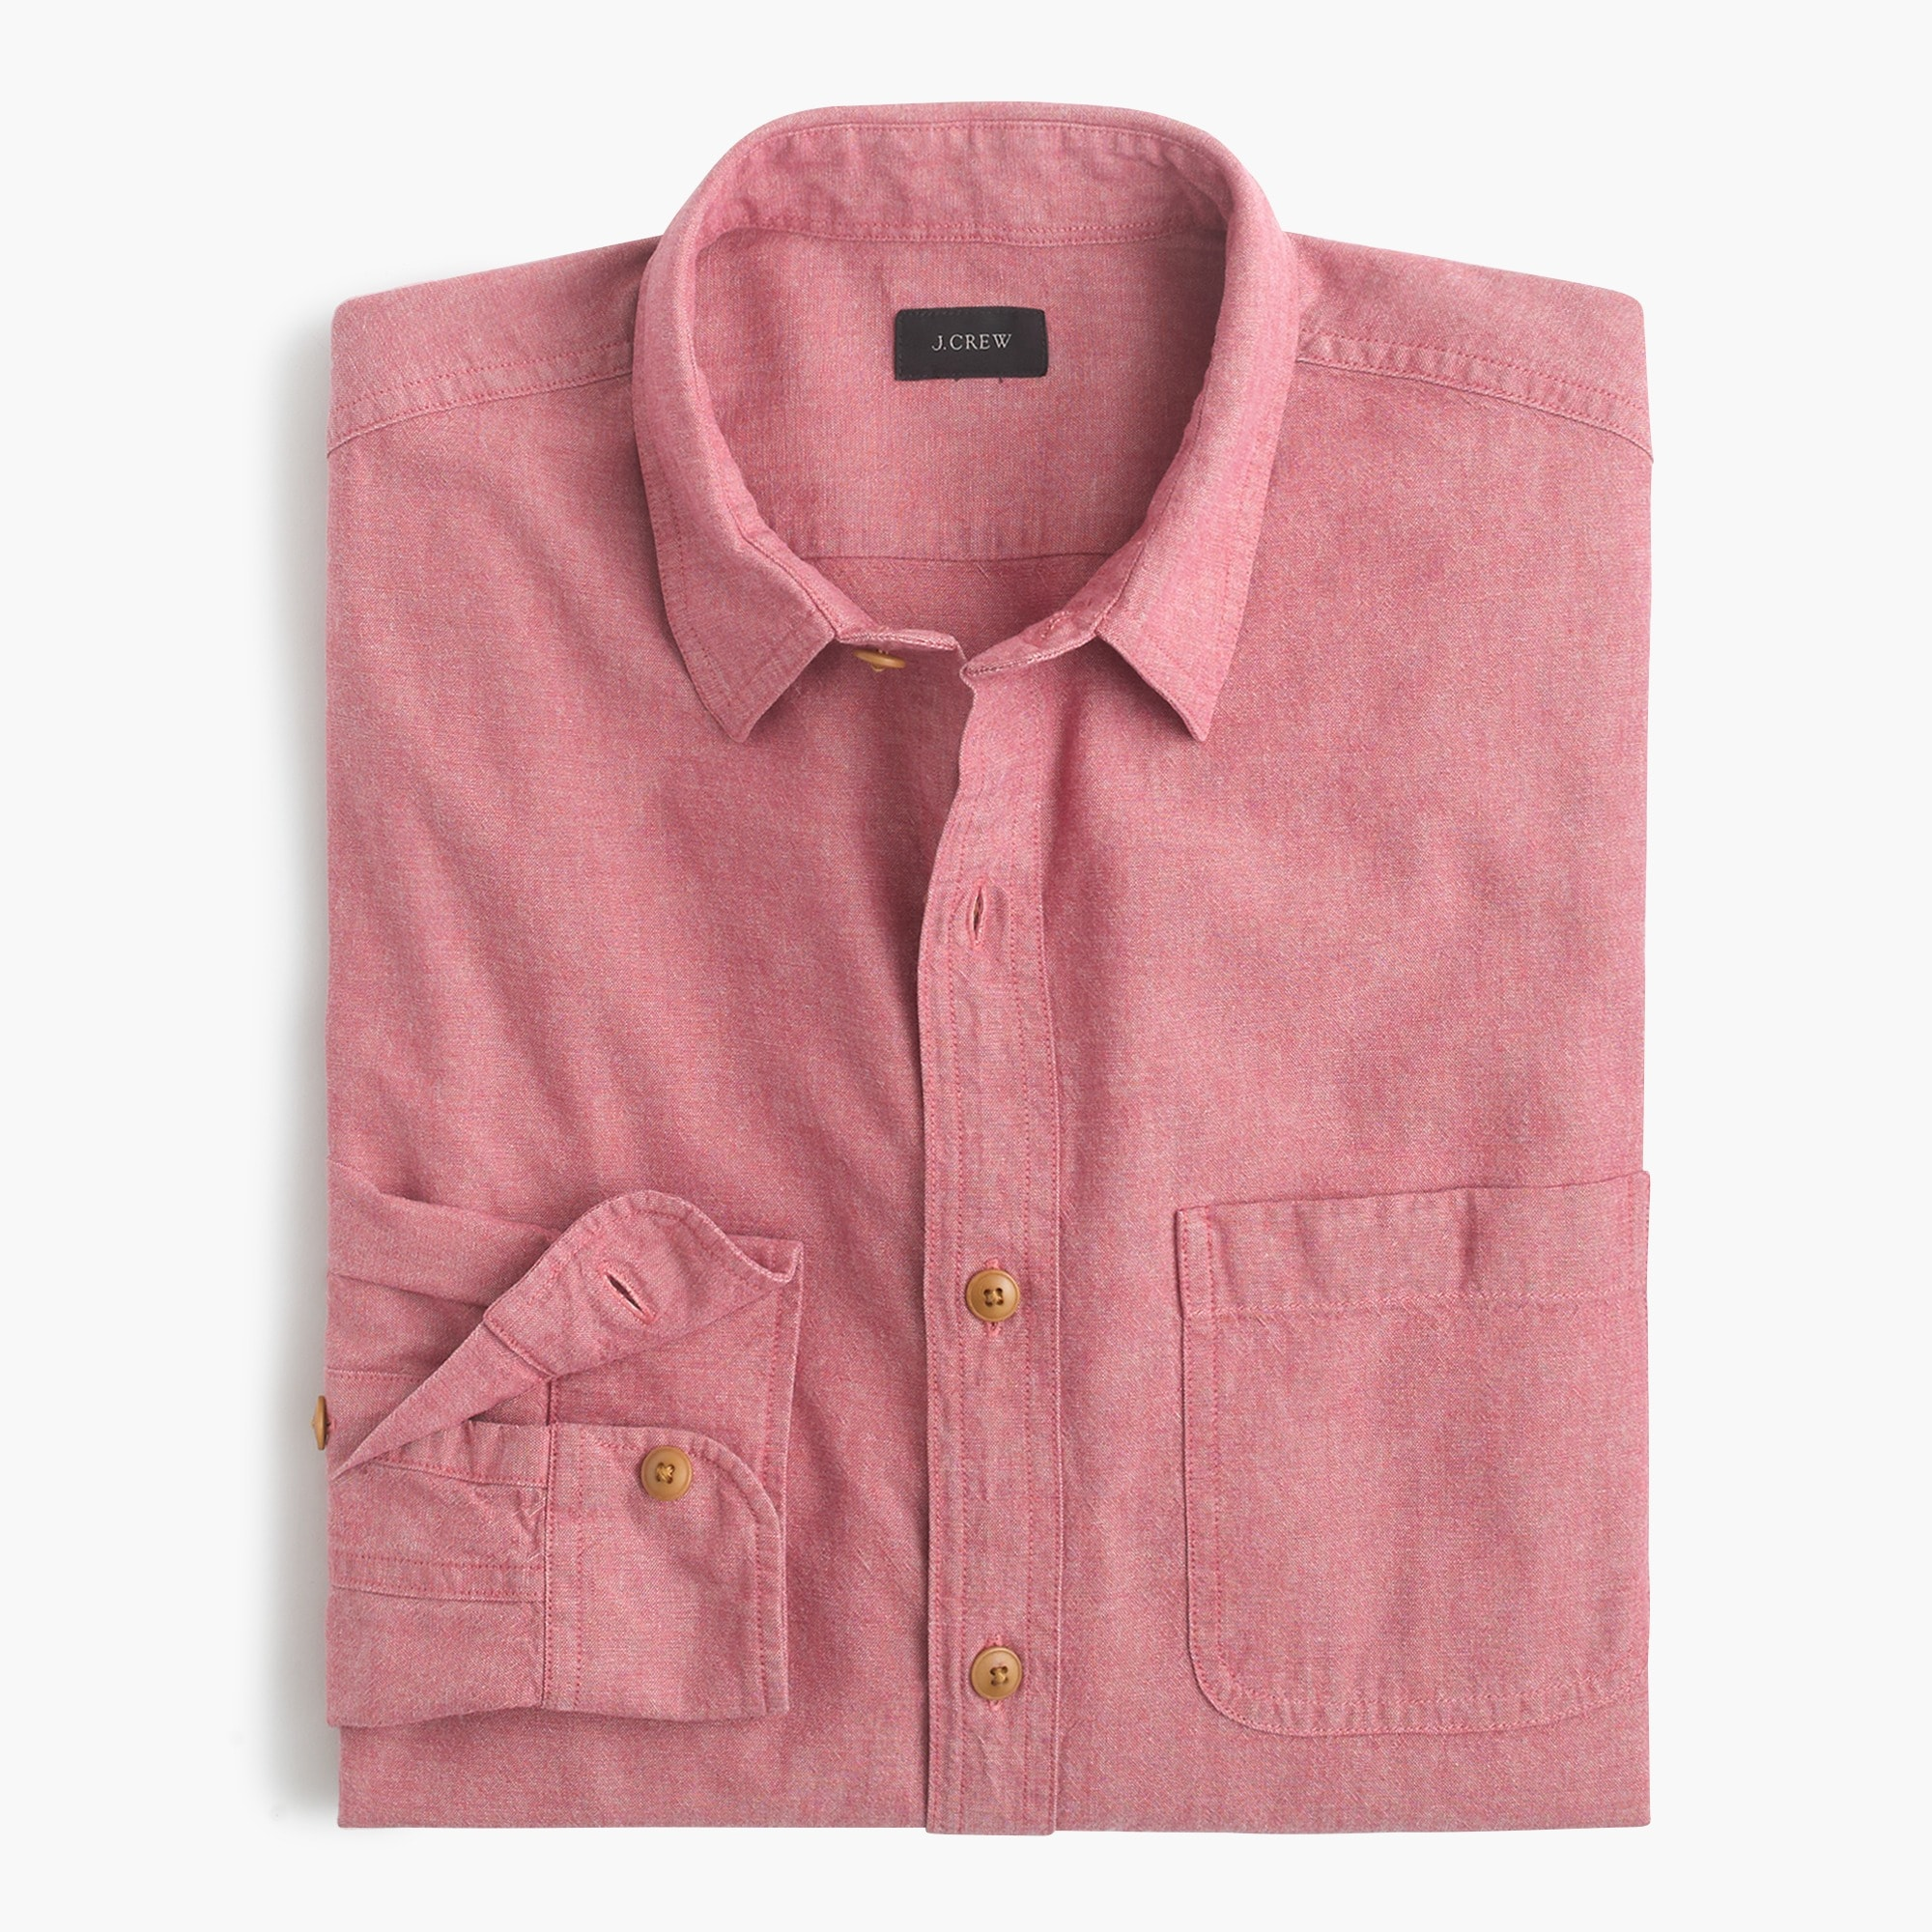 Slub cotton shirt in solid